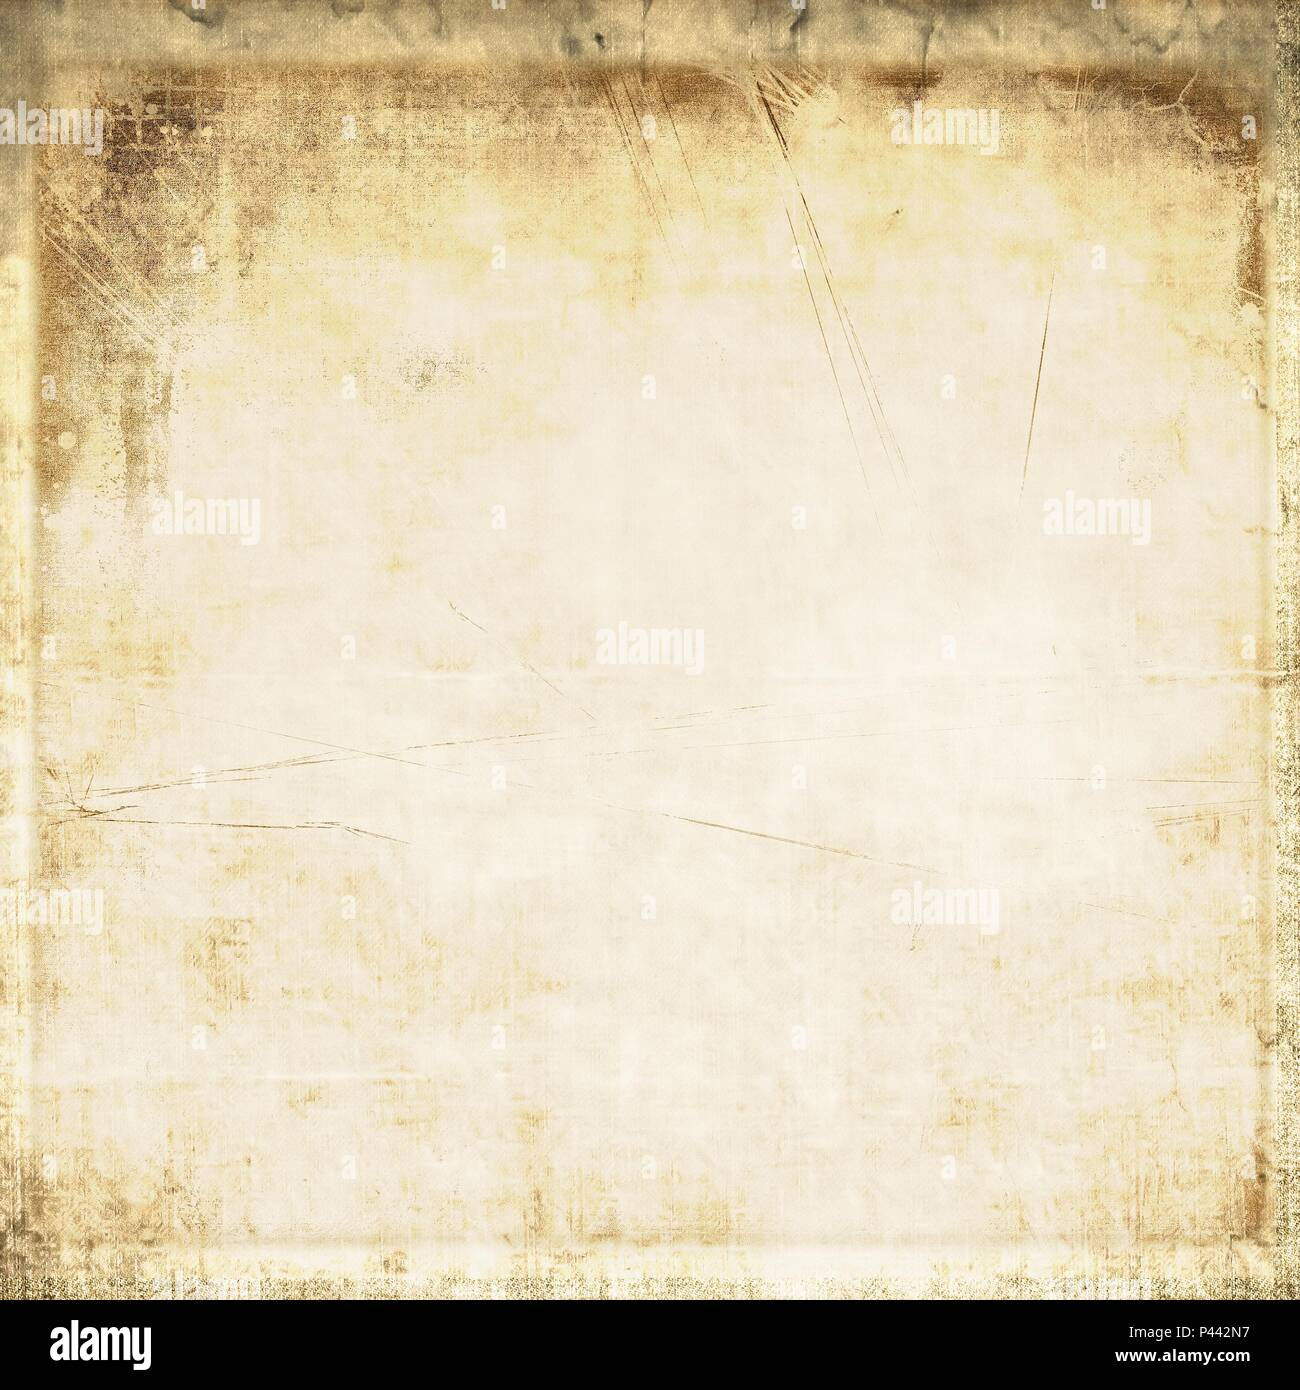 Vintage fabric texture background in sepia tones. - Stock Image